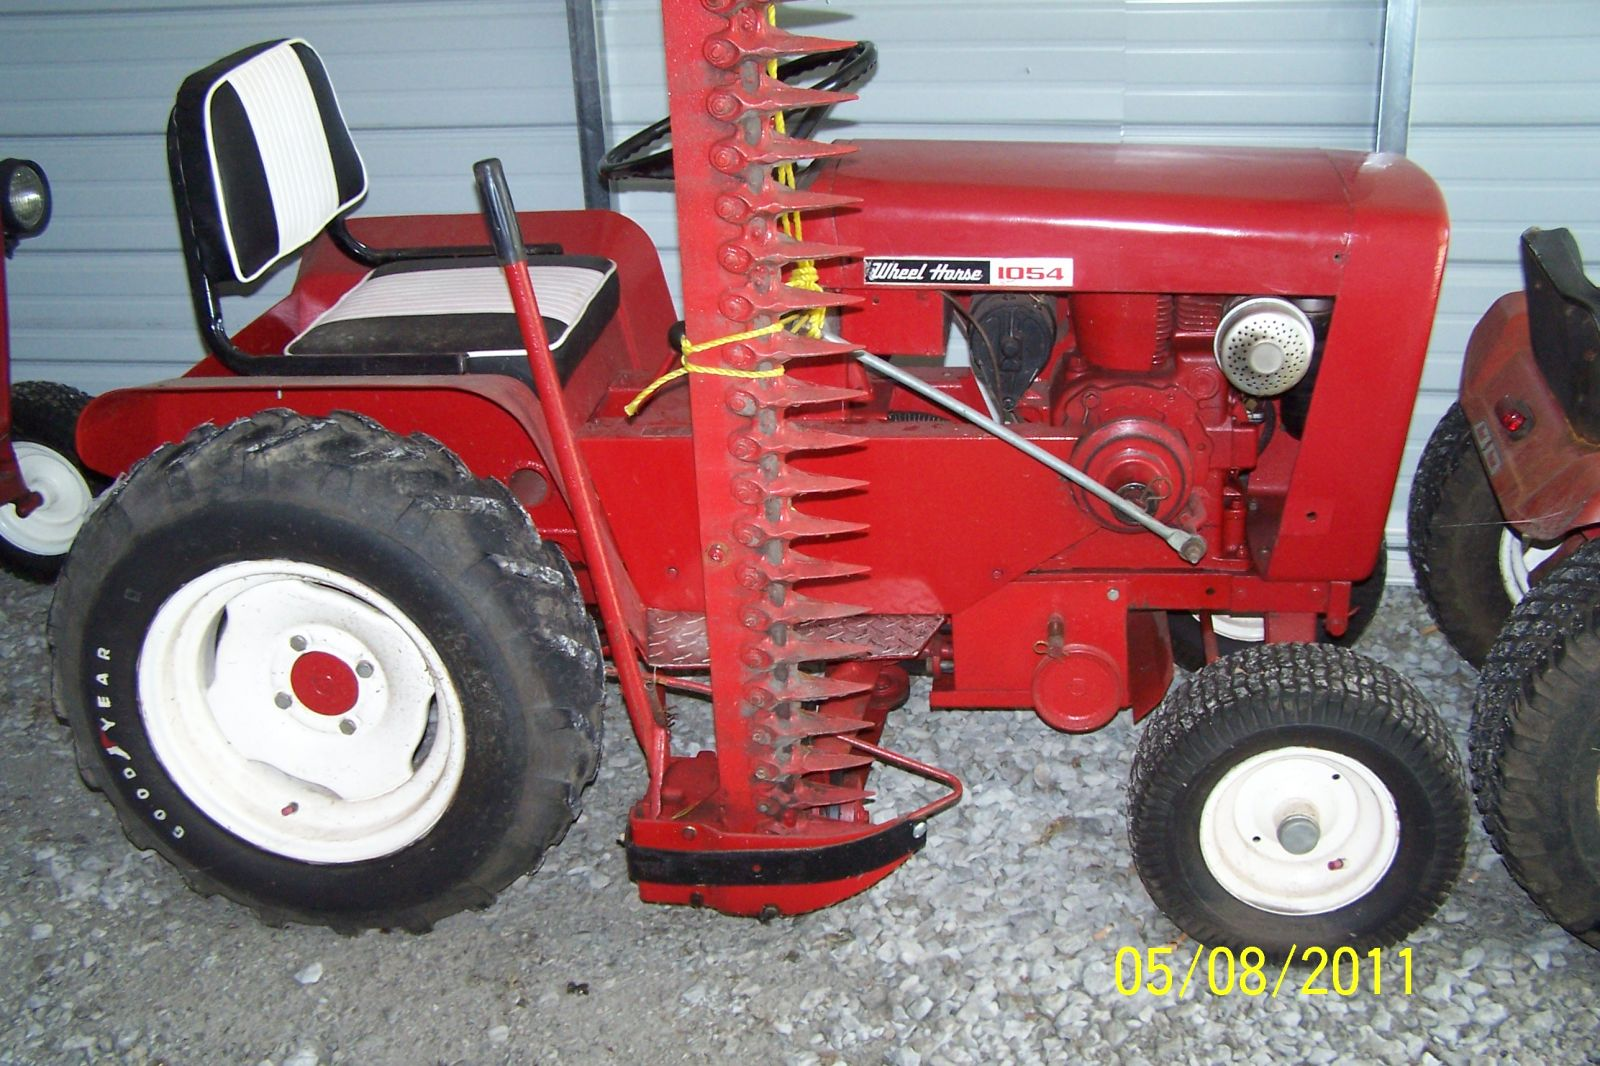 1965 Wheel Horse 1054-A with 52 inch Sickle Bar Mower